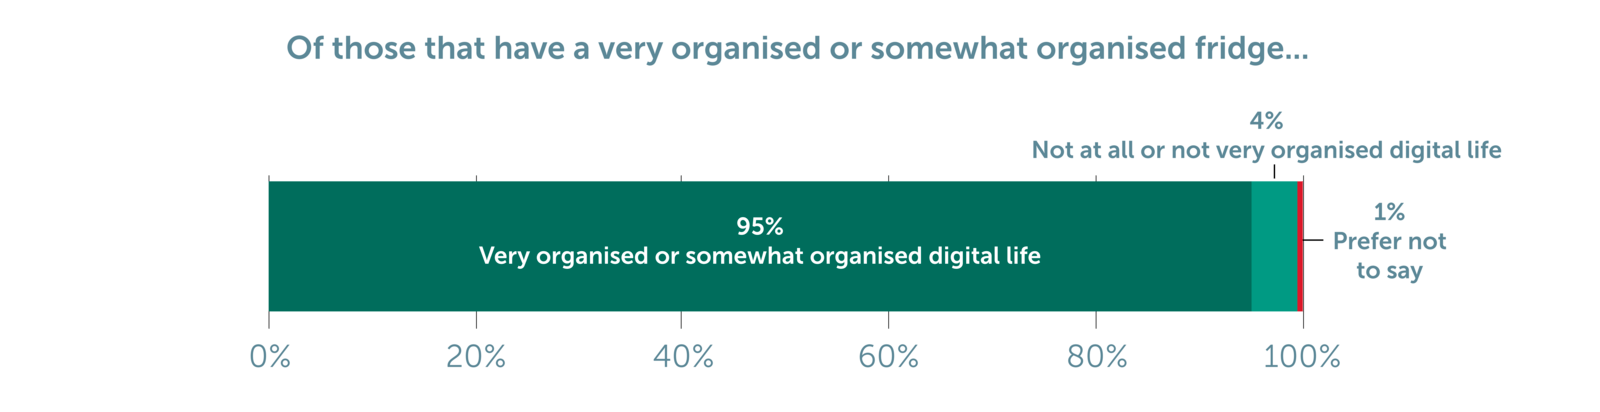 Figure 4: How organised would you say you were in your digital life at work compared to with your fridge (Chart 22)